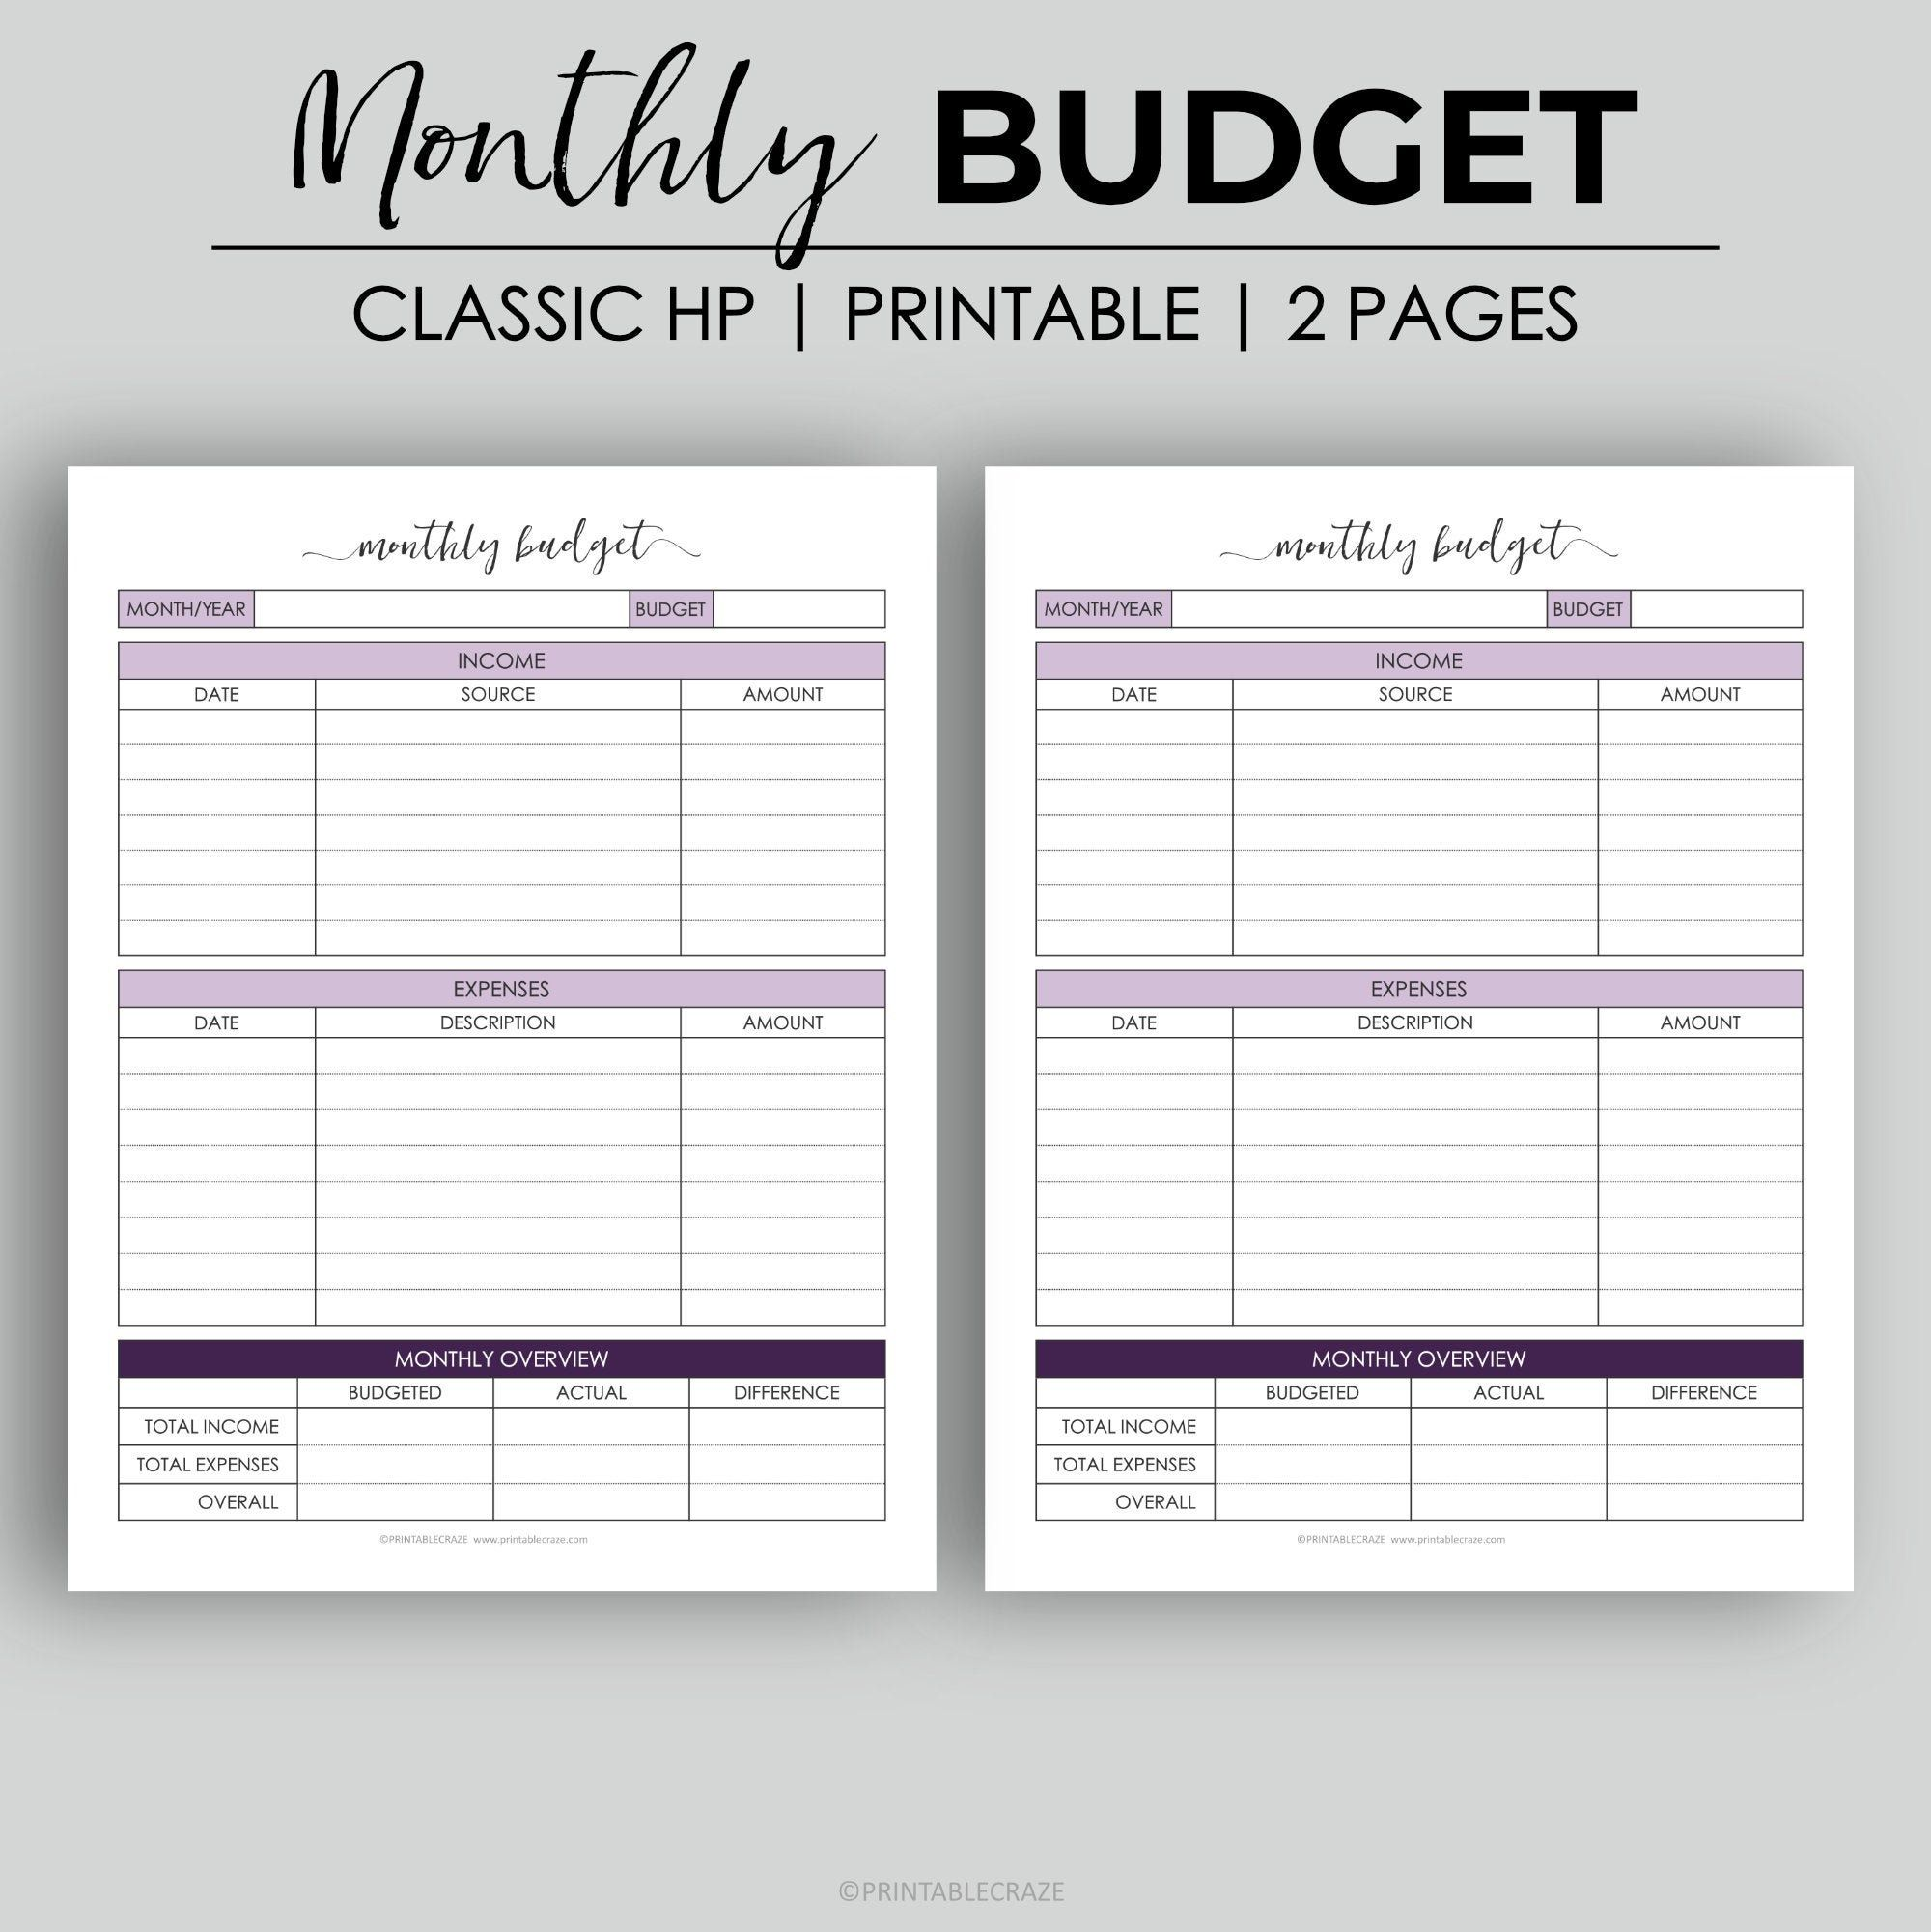 Classic Hp Monthly Budget Expense Tracker Income Tracker Etsy Budgeting Money Budget Planner Free Free Budget Printables